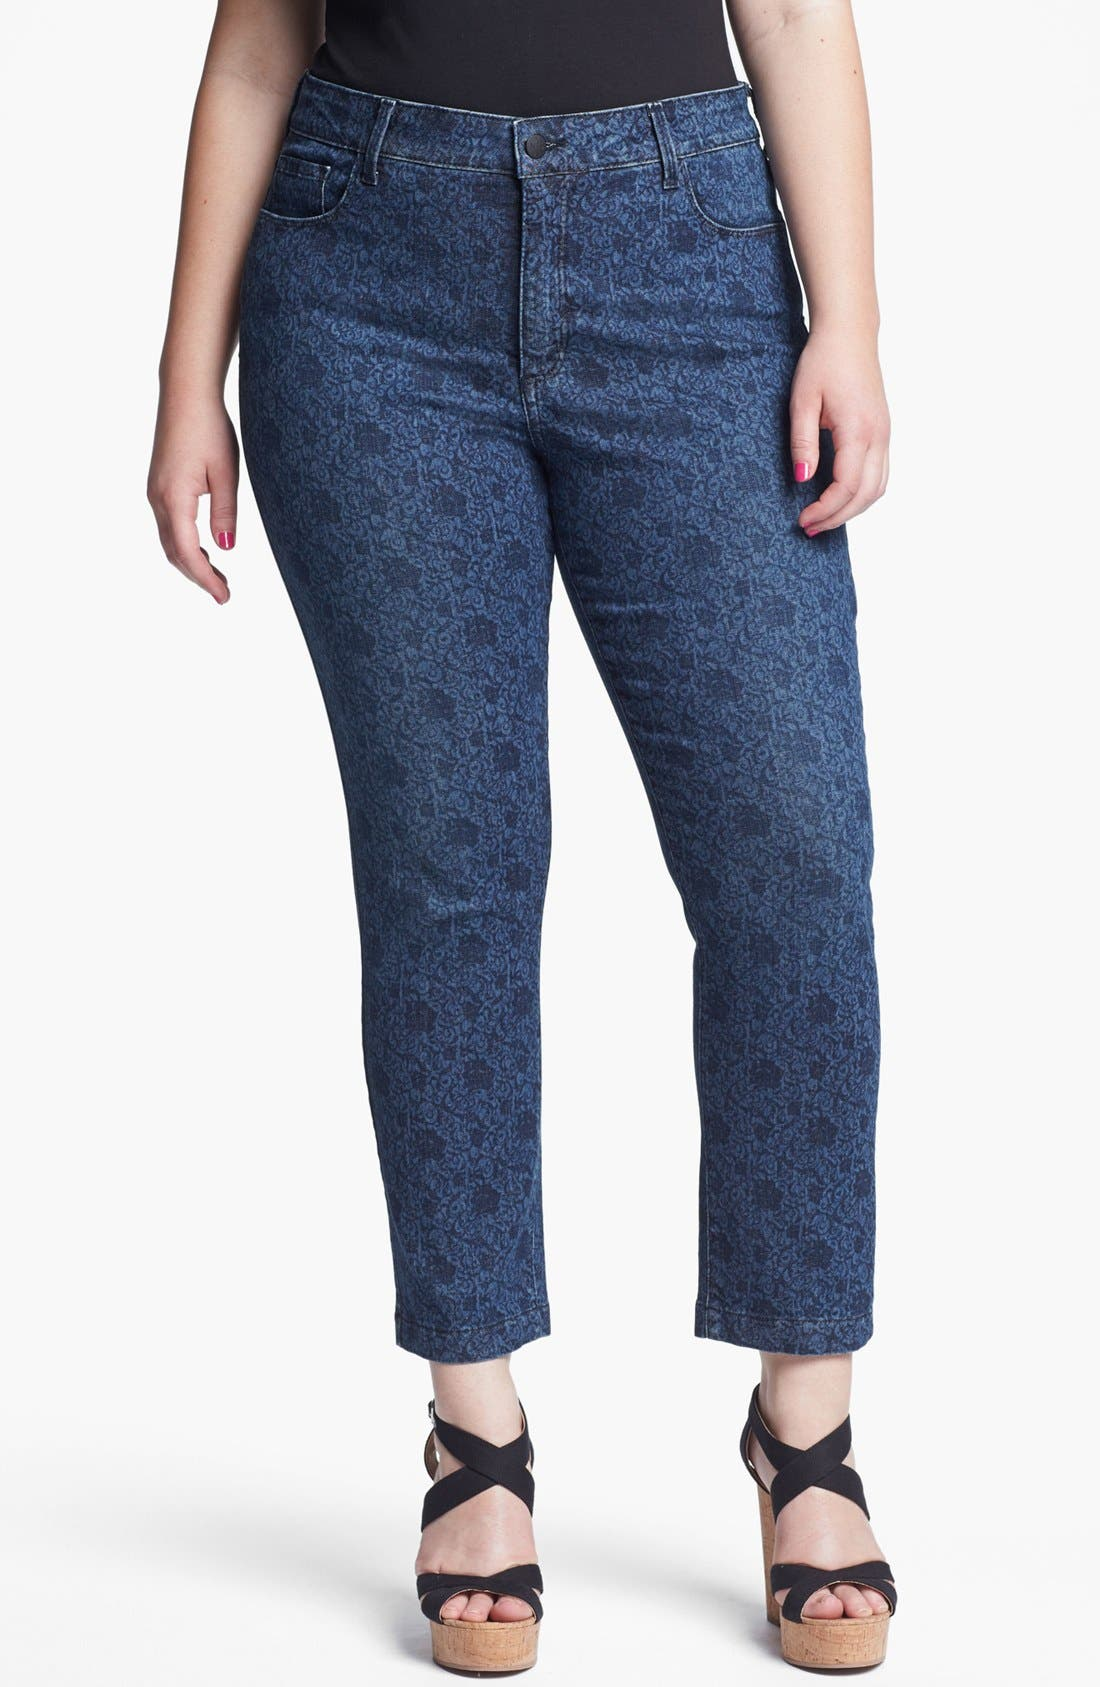 Alternate Image 1 Selected - NYDJ 'Audrey' Rose Print Ankle Jeans (Plus Size)